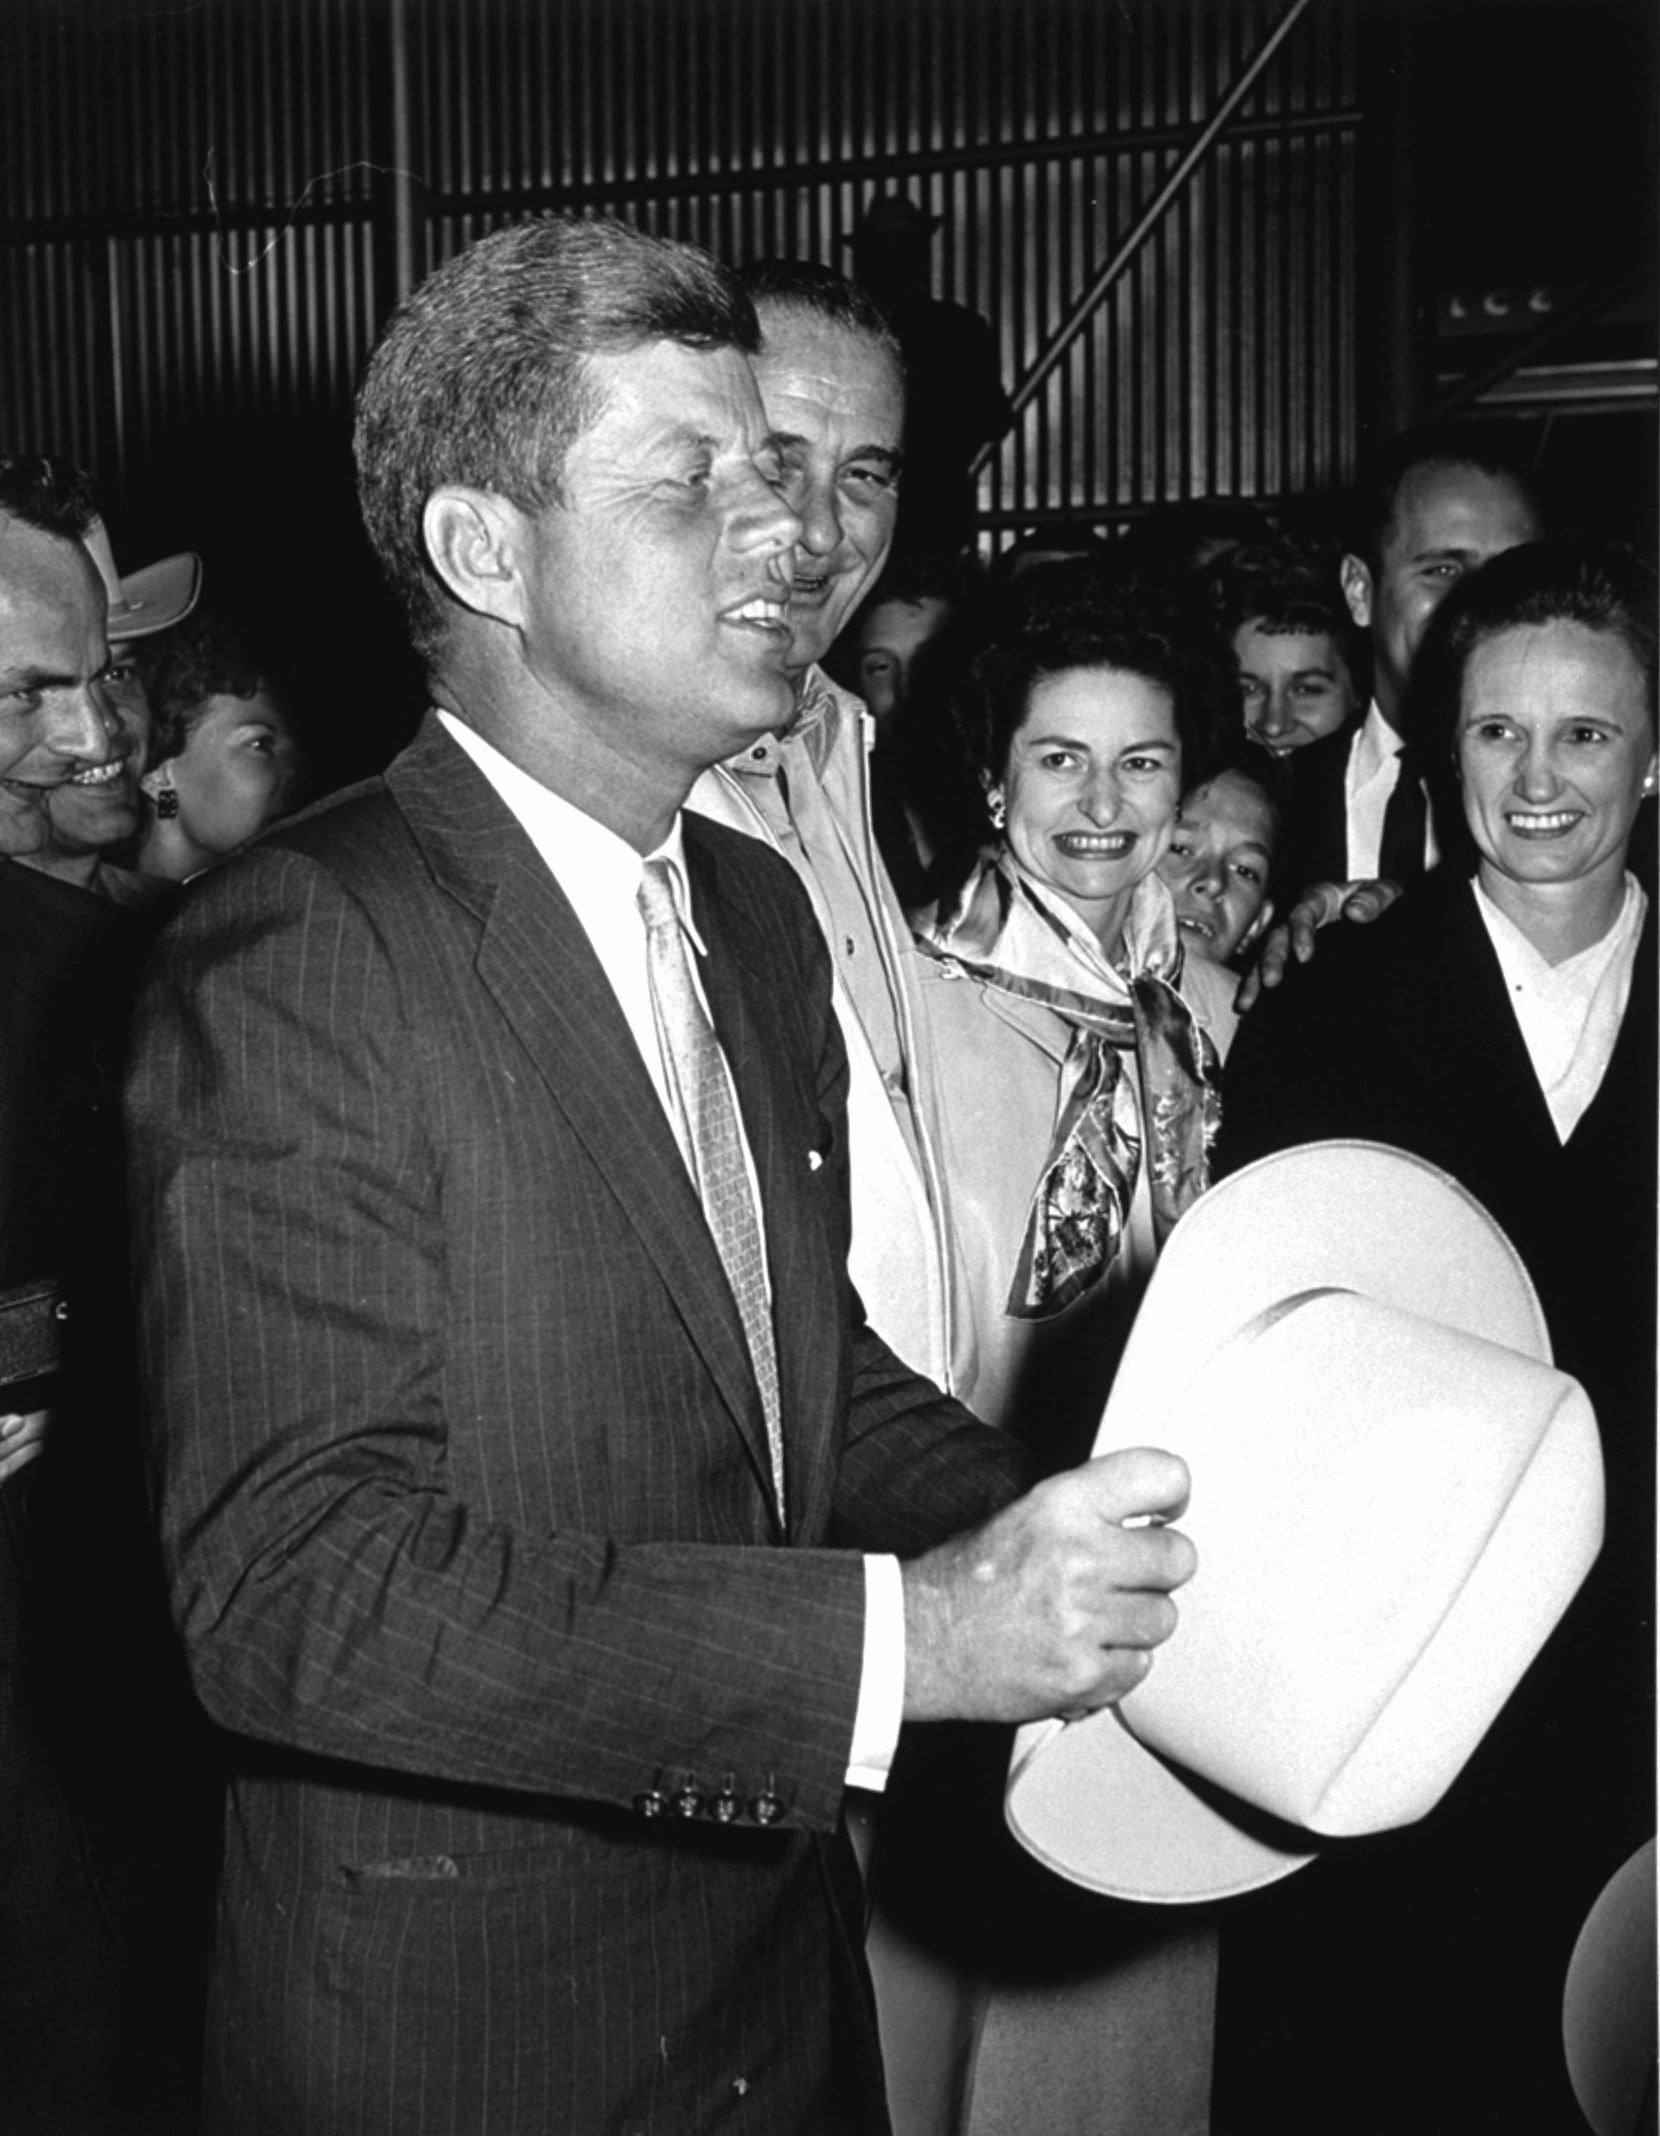 Sen. John F. Kennedy, then president-elect, thanked a Texas delegation from Blanco County and Stonewall for the Western hat they presented to him on his arrival at the LBJ Ranch on Nov. 16, 1960.  Sen. Lyndon B. Johnson, vice president-elect, and Lady Bird Johnson welcomed him.